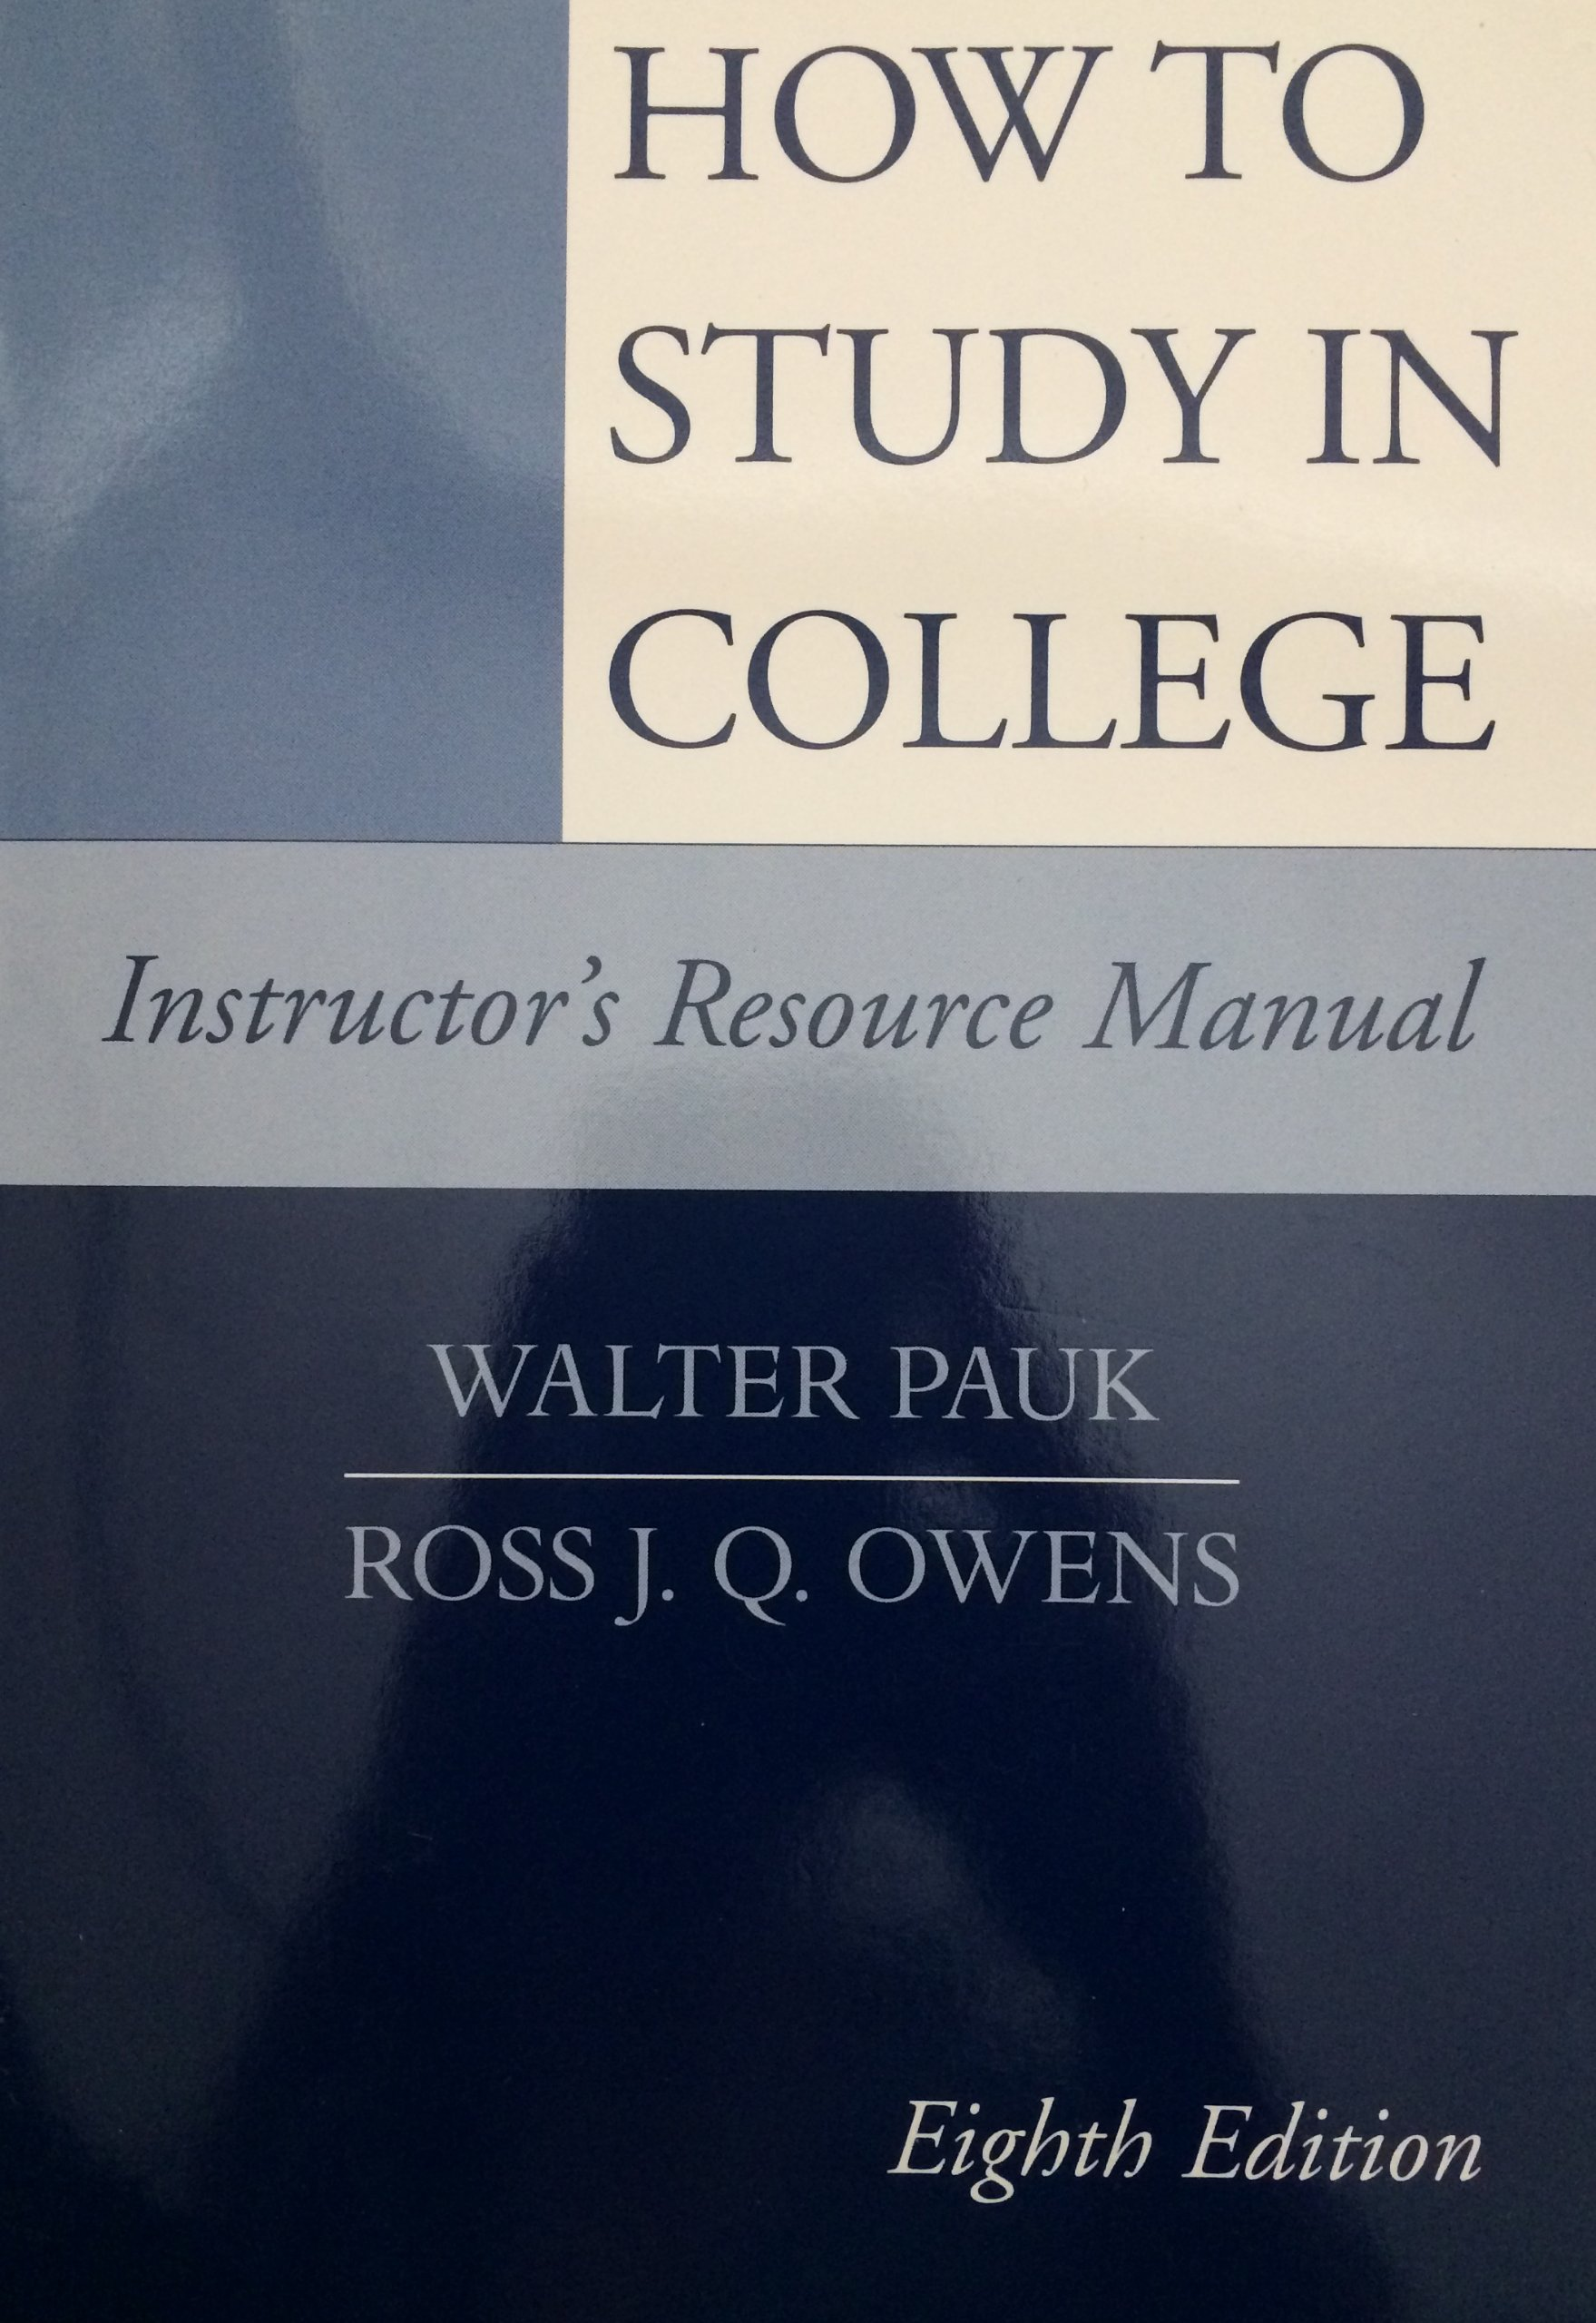 How To Study In College Instructor's Resource Manual PDF